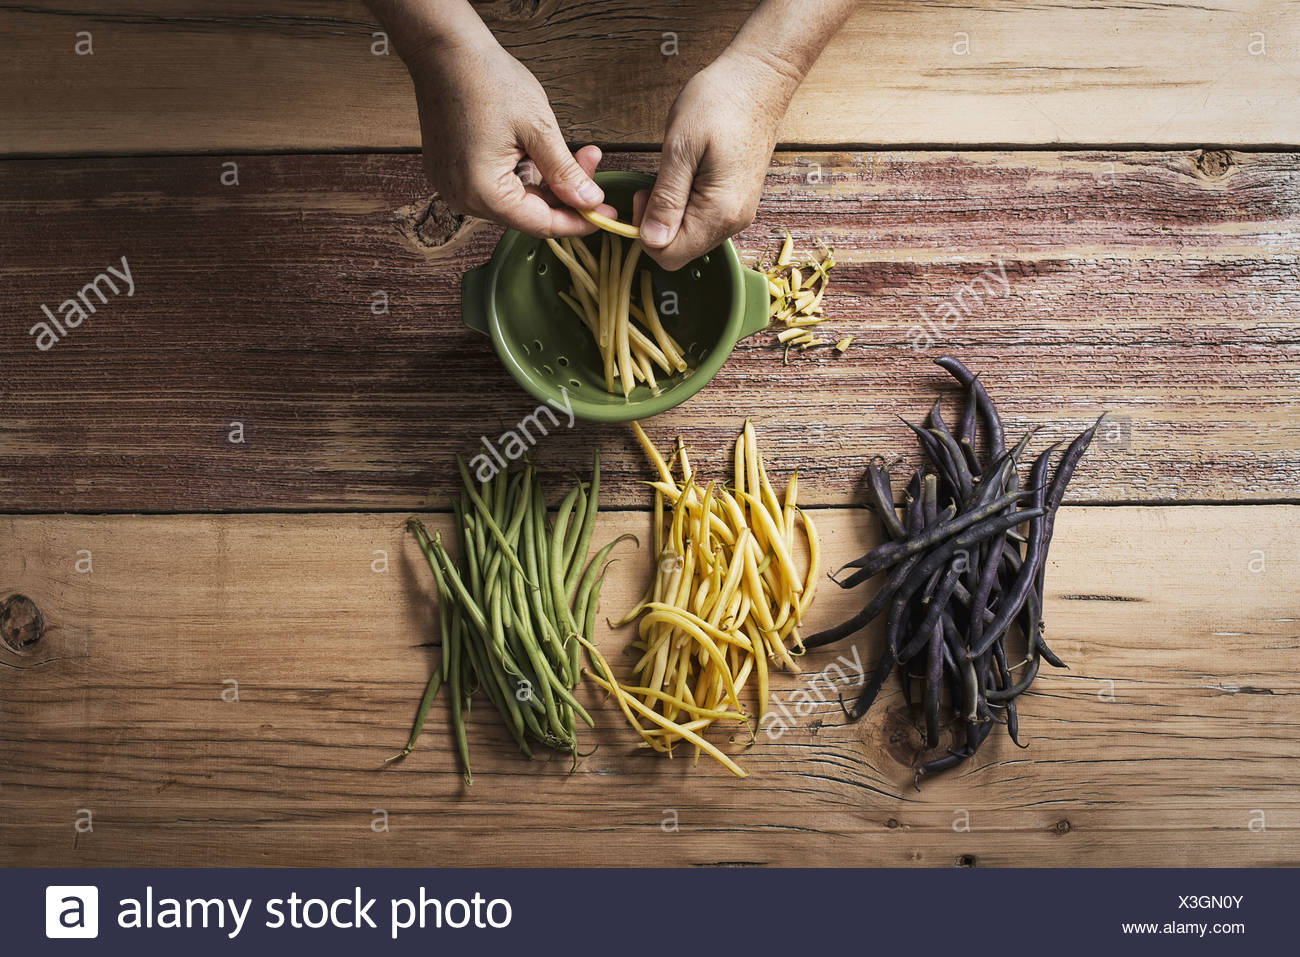 Organic green yellow and black haricot beans fresh vegetables being topped and tailed by a person before cooking and eating - Stock Image